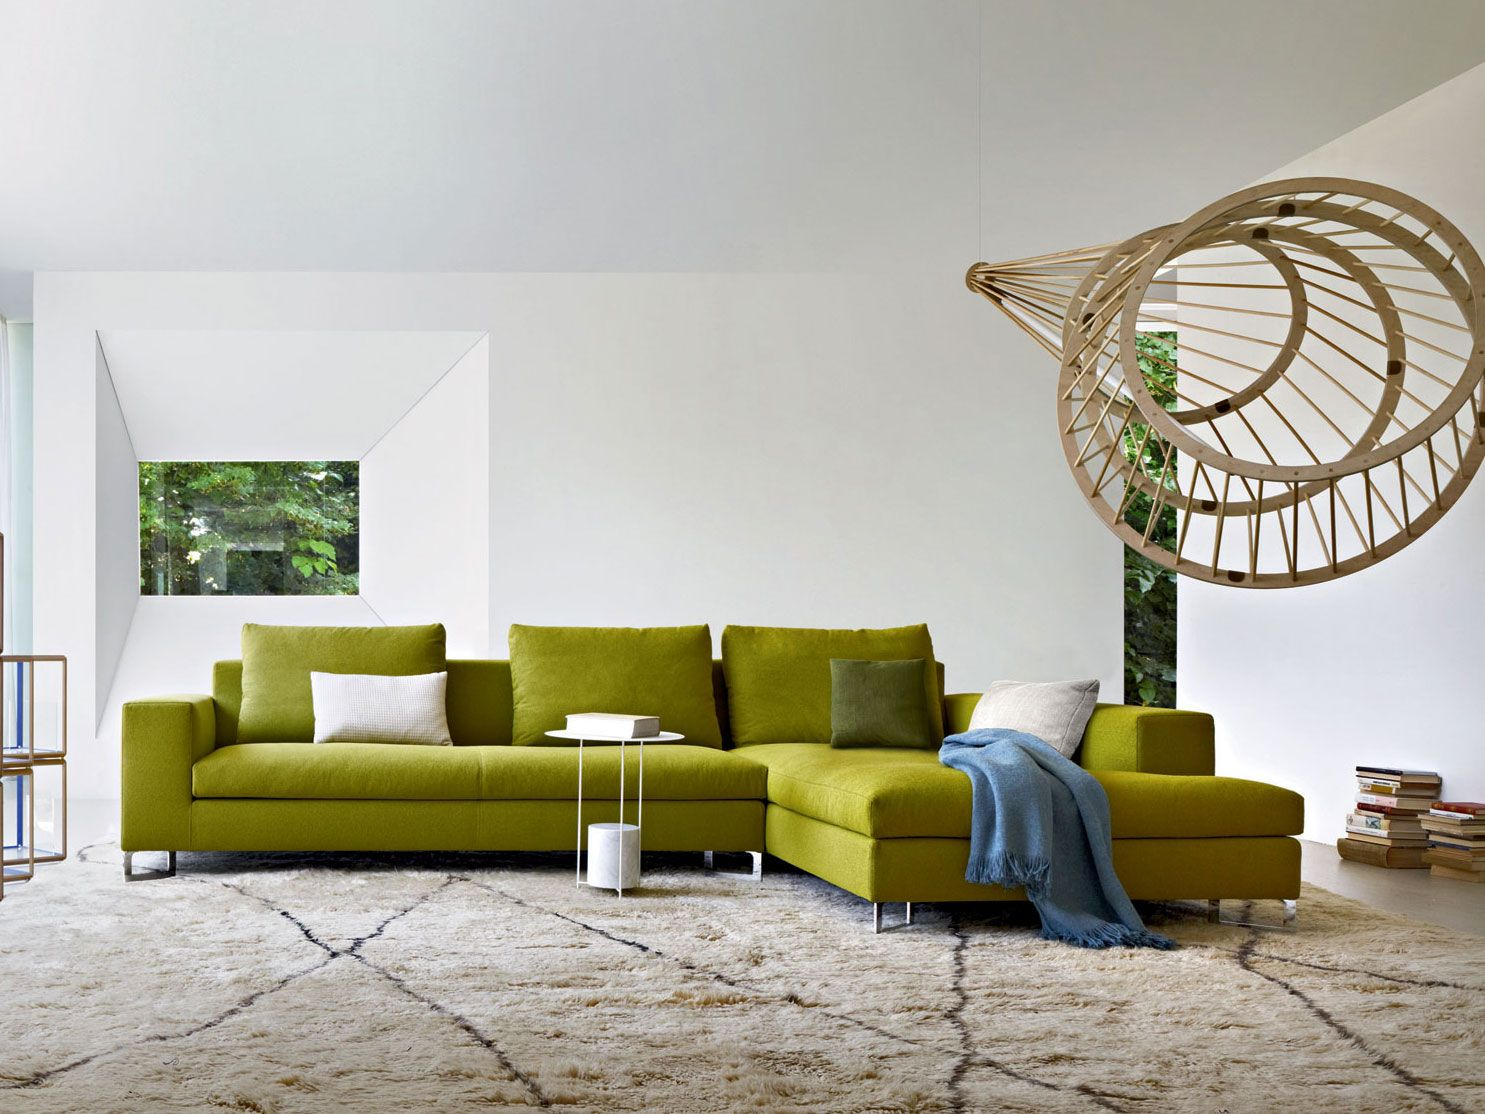 Sectional Upholstered Fabric Sofa Large By Molteni C Design Ferruccio Laviani Living Room Design Decor Furniture Large Sectional Sofa C shaped living room